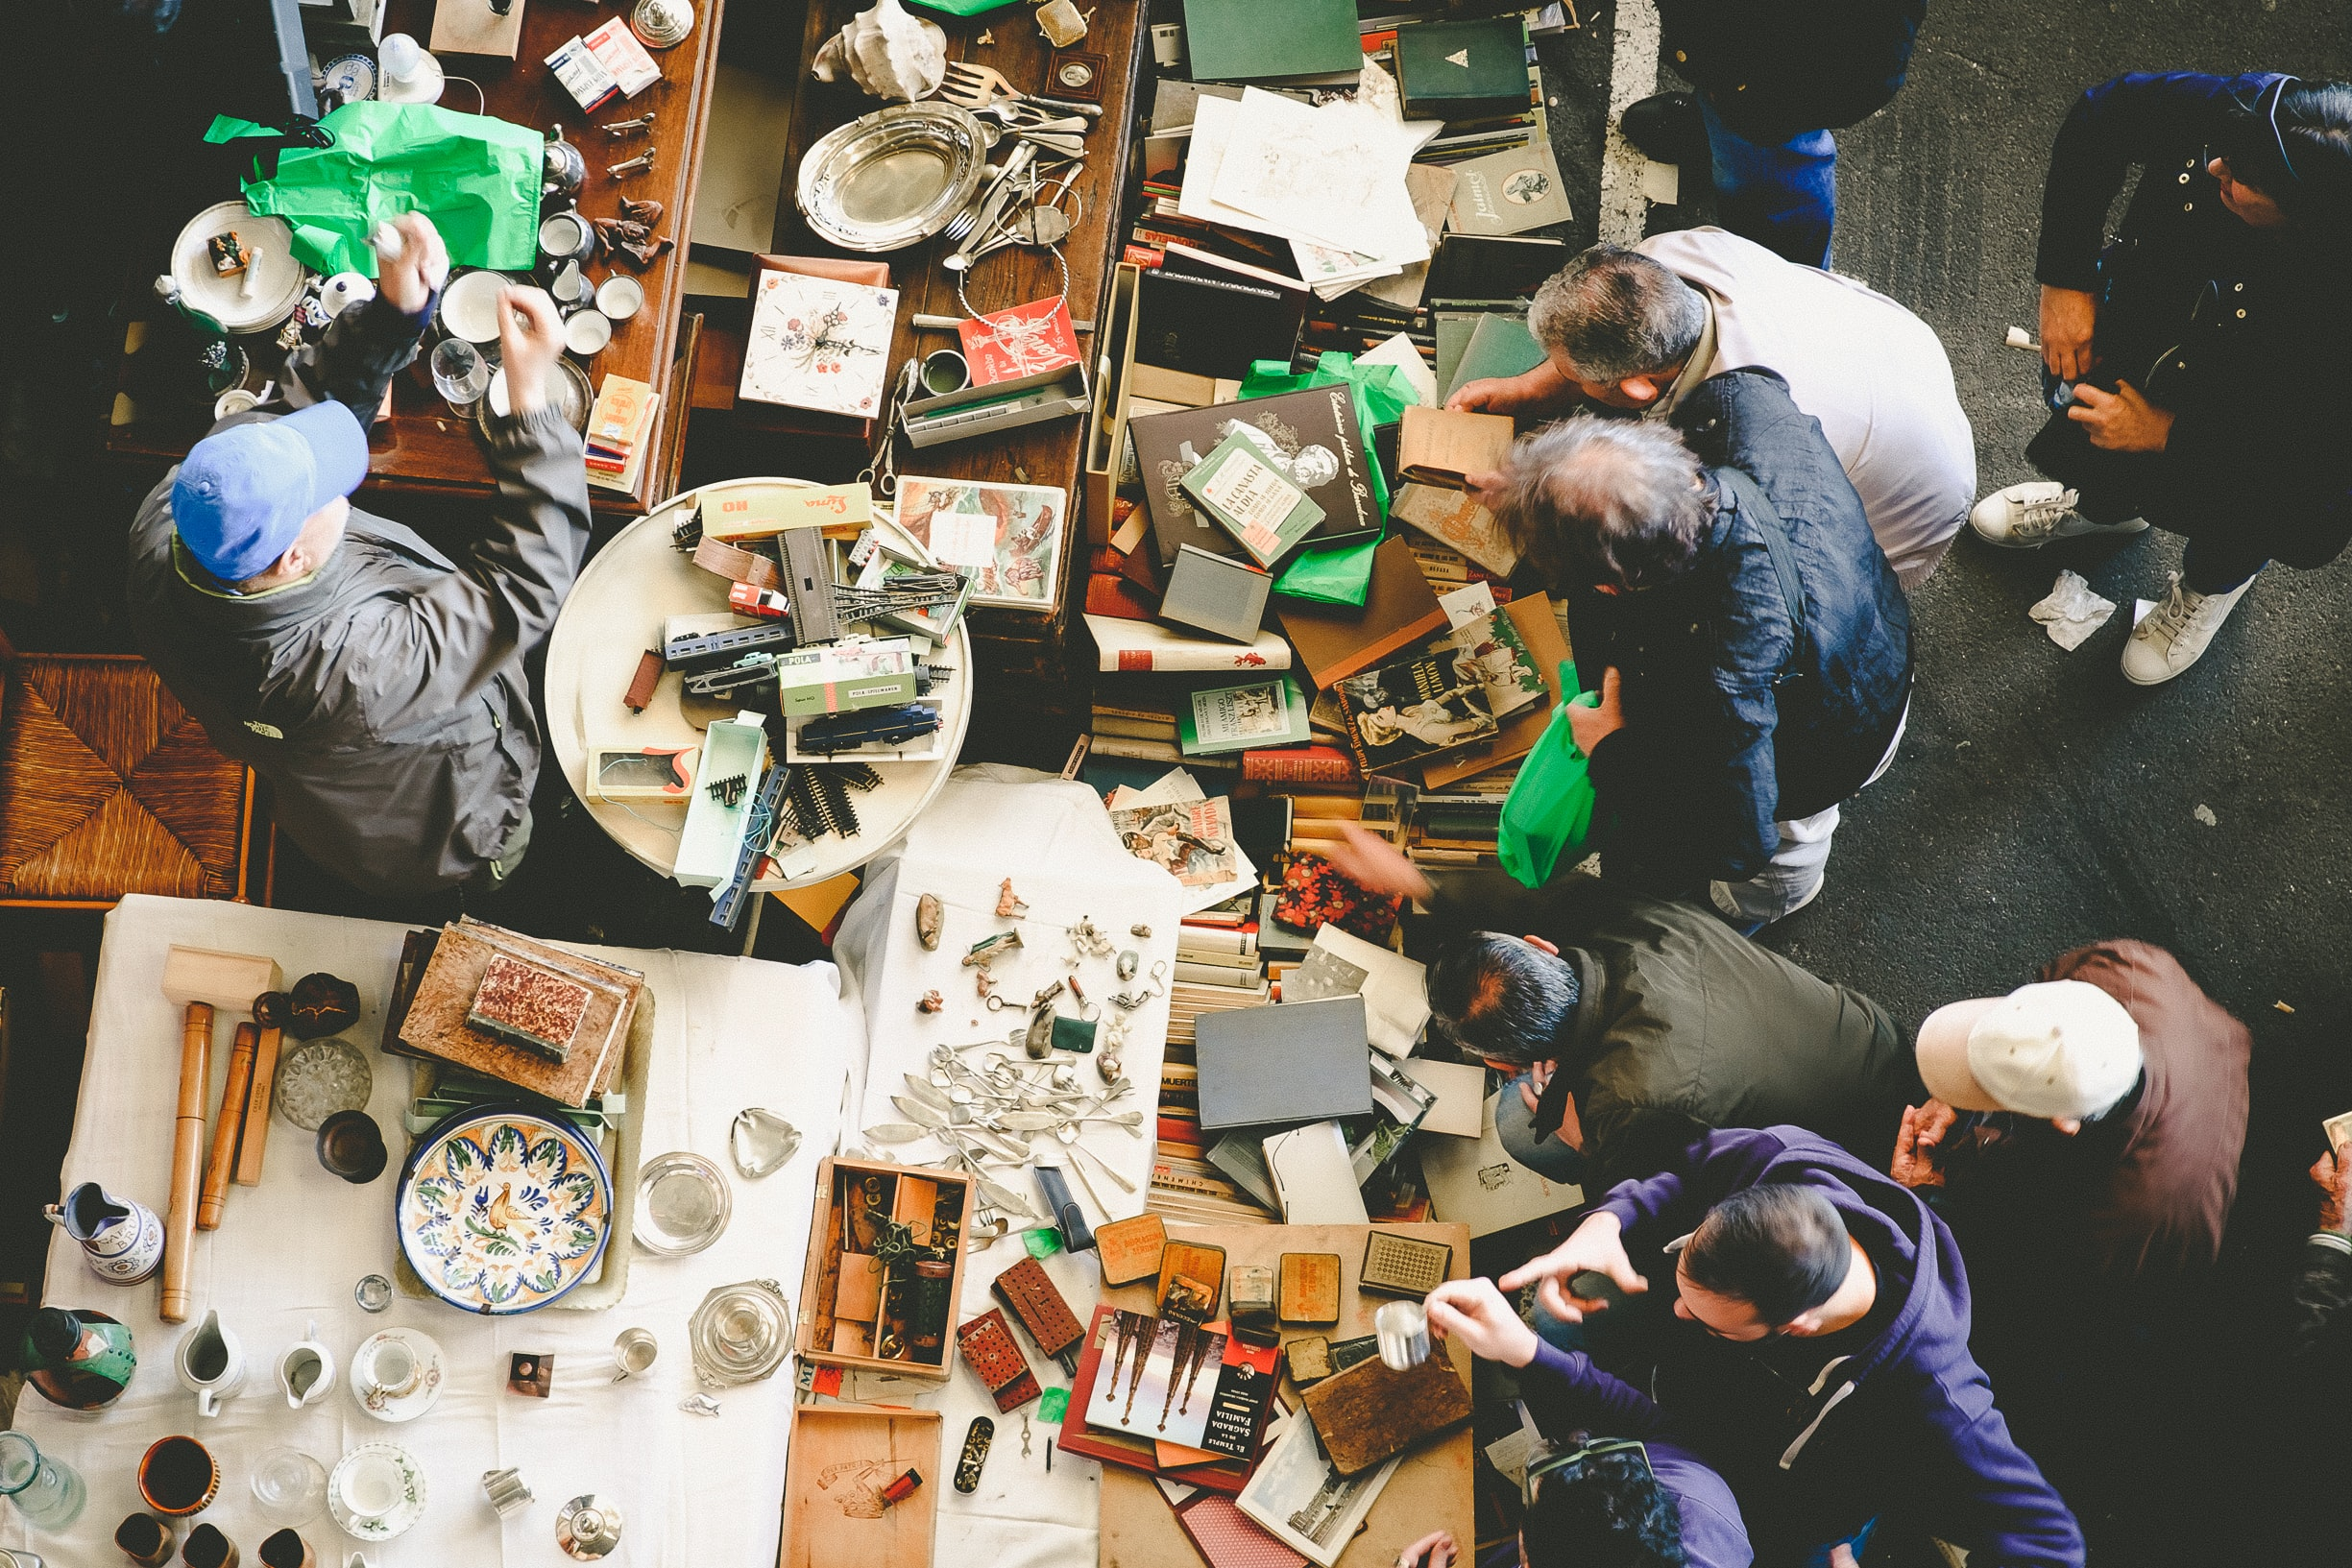 An overhead shot of people browsing books and trinkets at a flea market